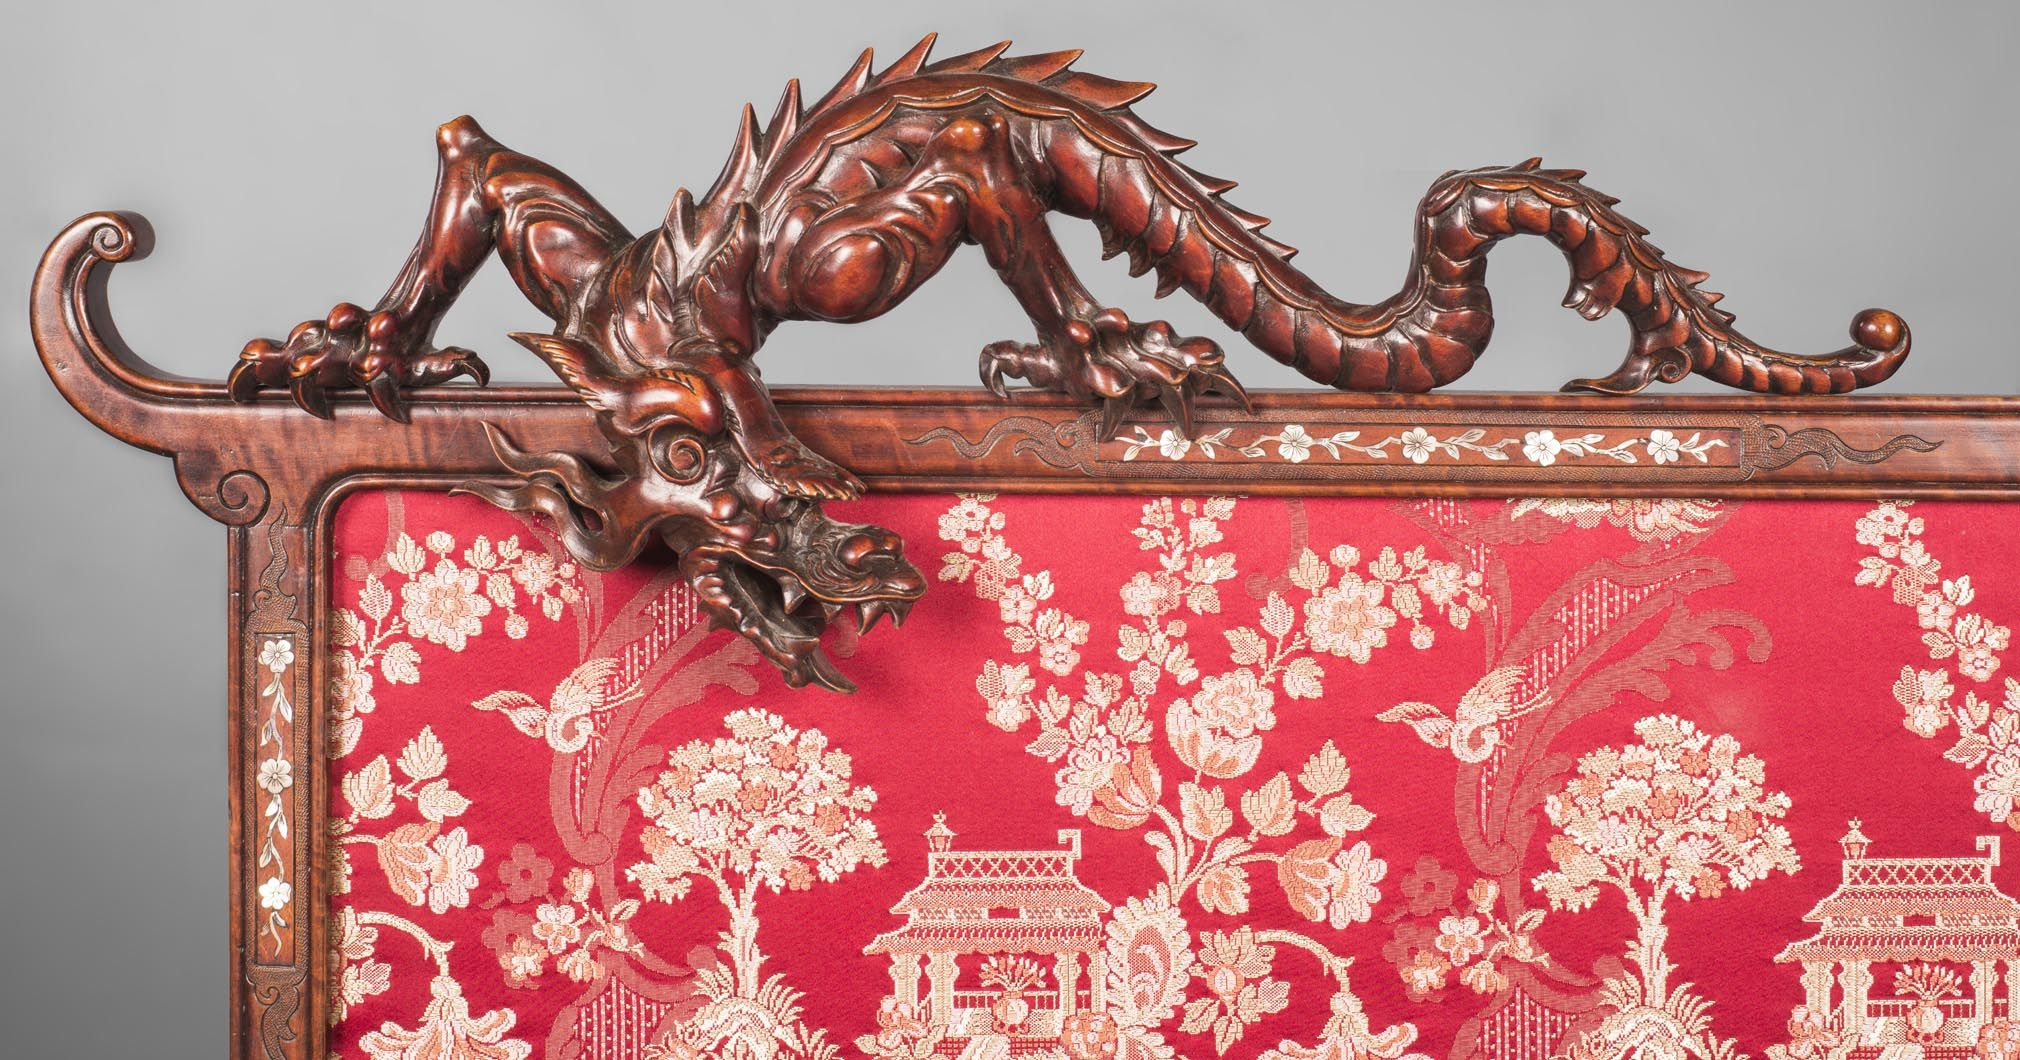 Cyrille Ruffier Des Aimes 1844 1916 Attributed To Japanese Style Fire Screen With Dragons Style Japanese Japanese Style